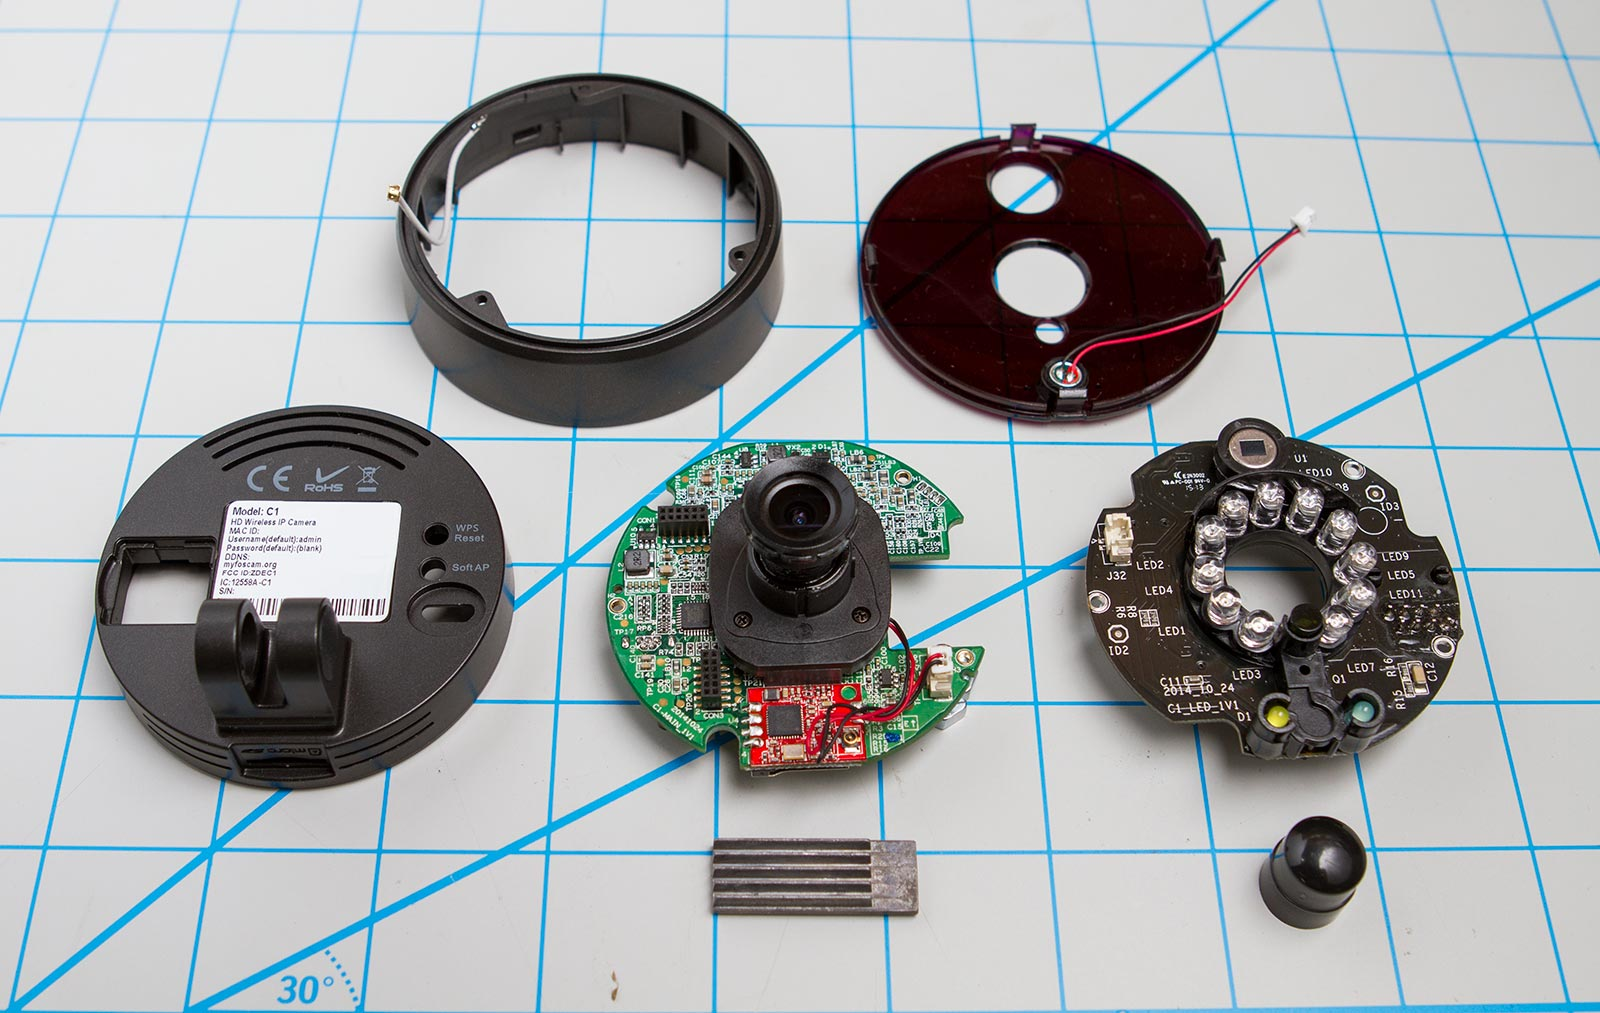 Foscam C1 disassembled